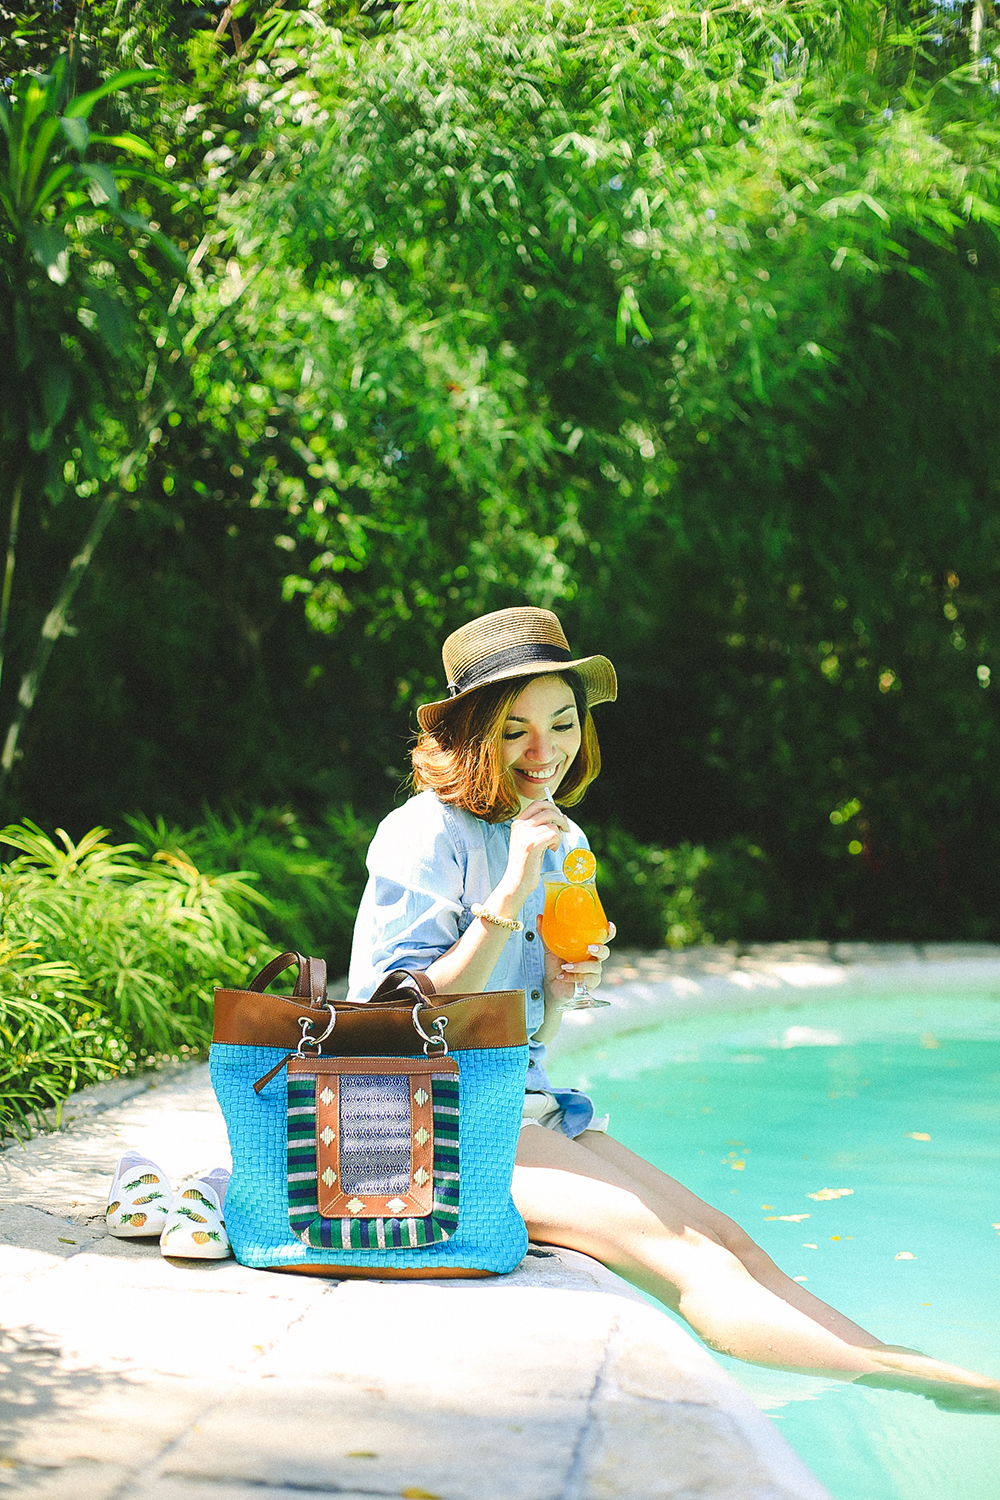 Rags-2-riches-lookbook-look4-4